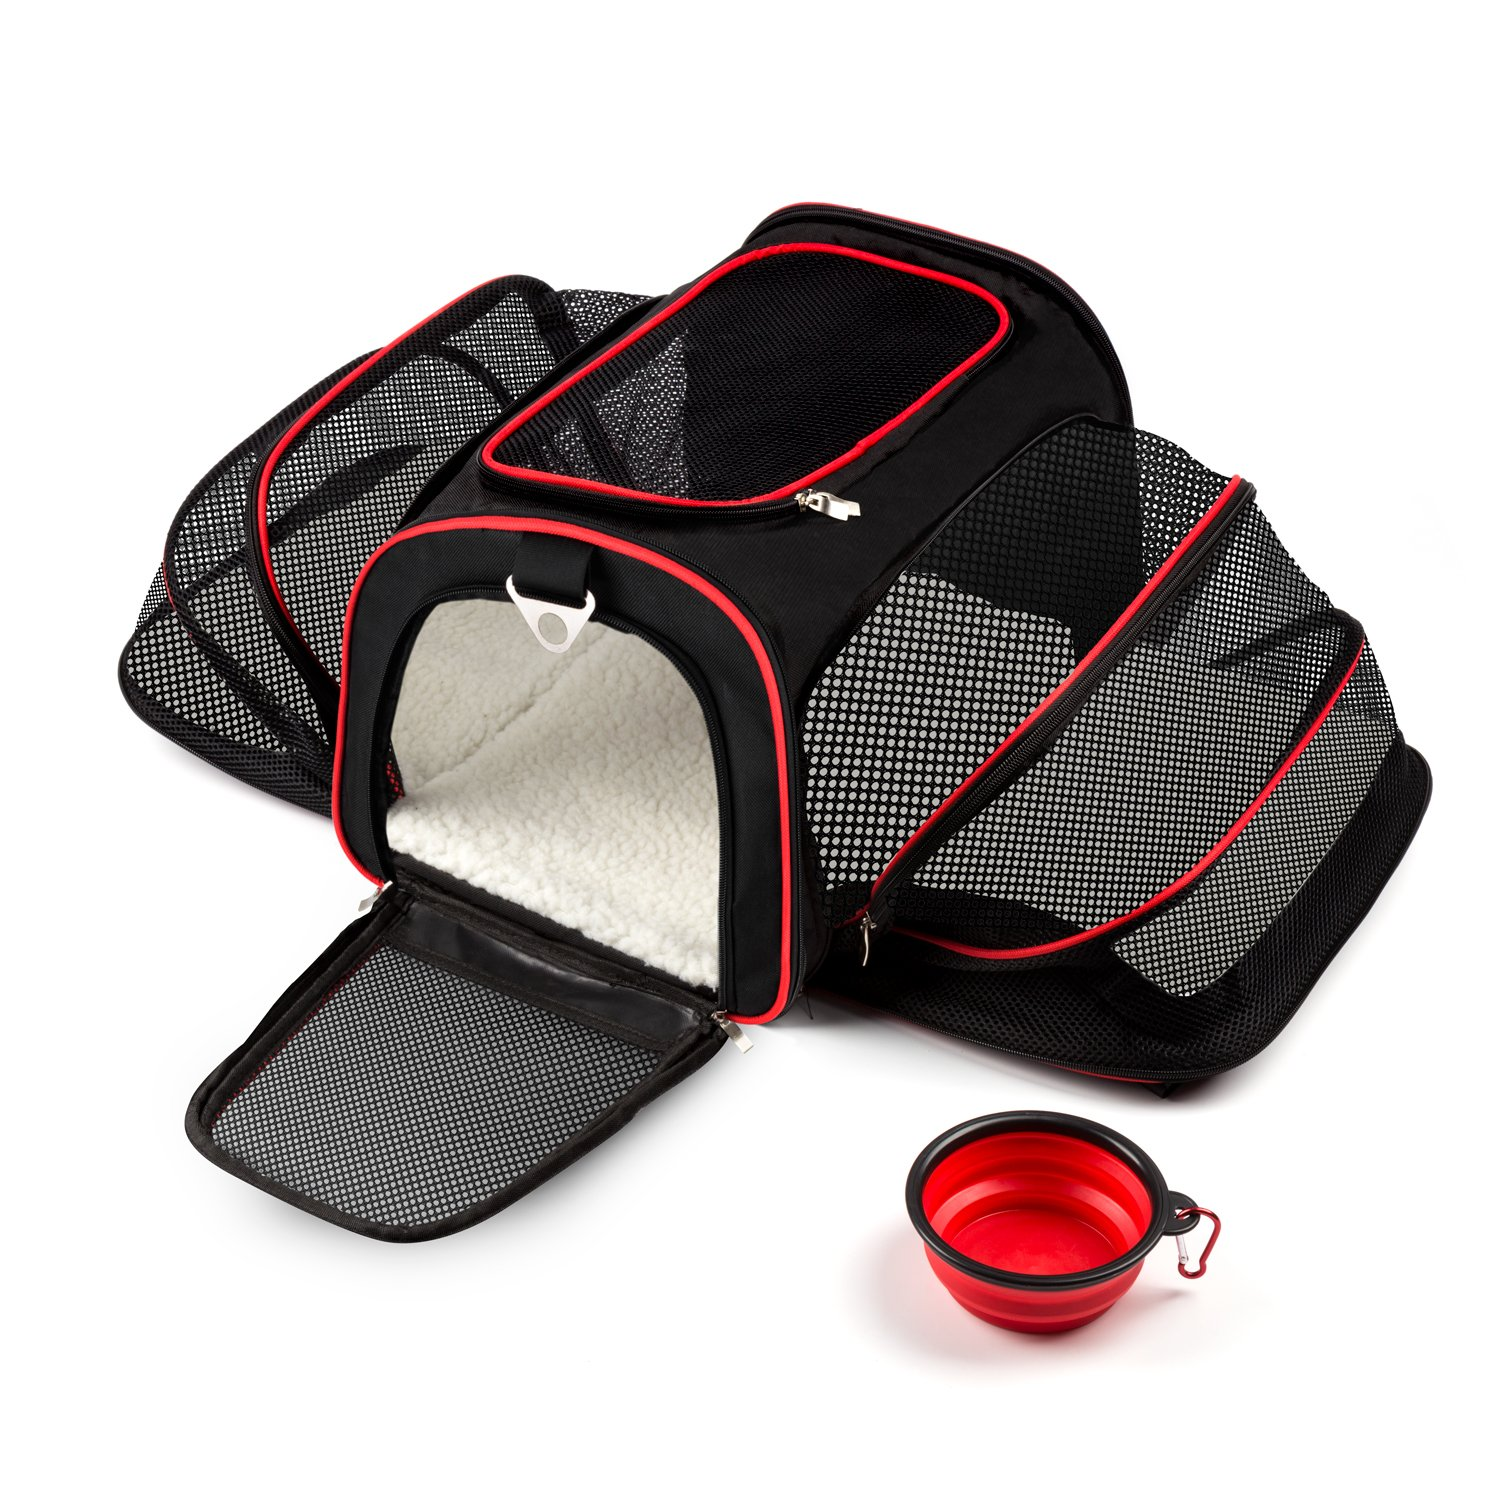 PETPAWJOY Cat Carrier, Airline Approved Pet Carrier Dog Puppy Carriers, Dog Travel Bag for small Dog & Cats